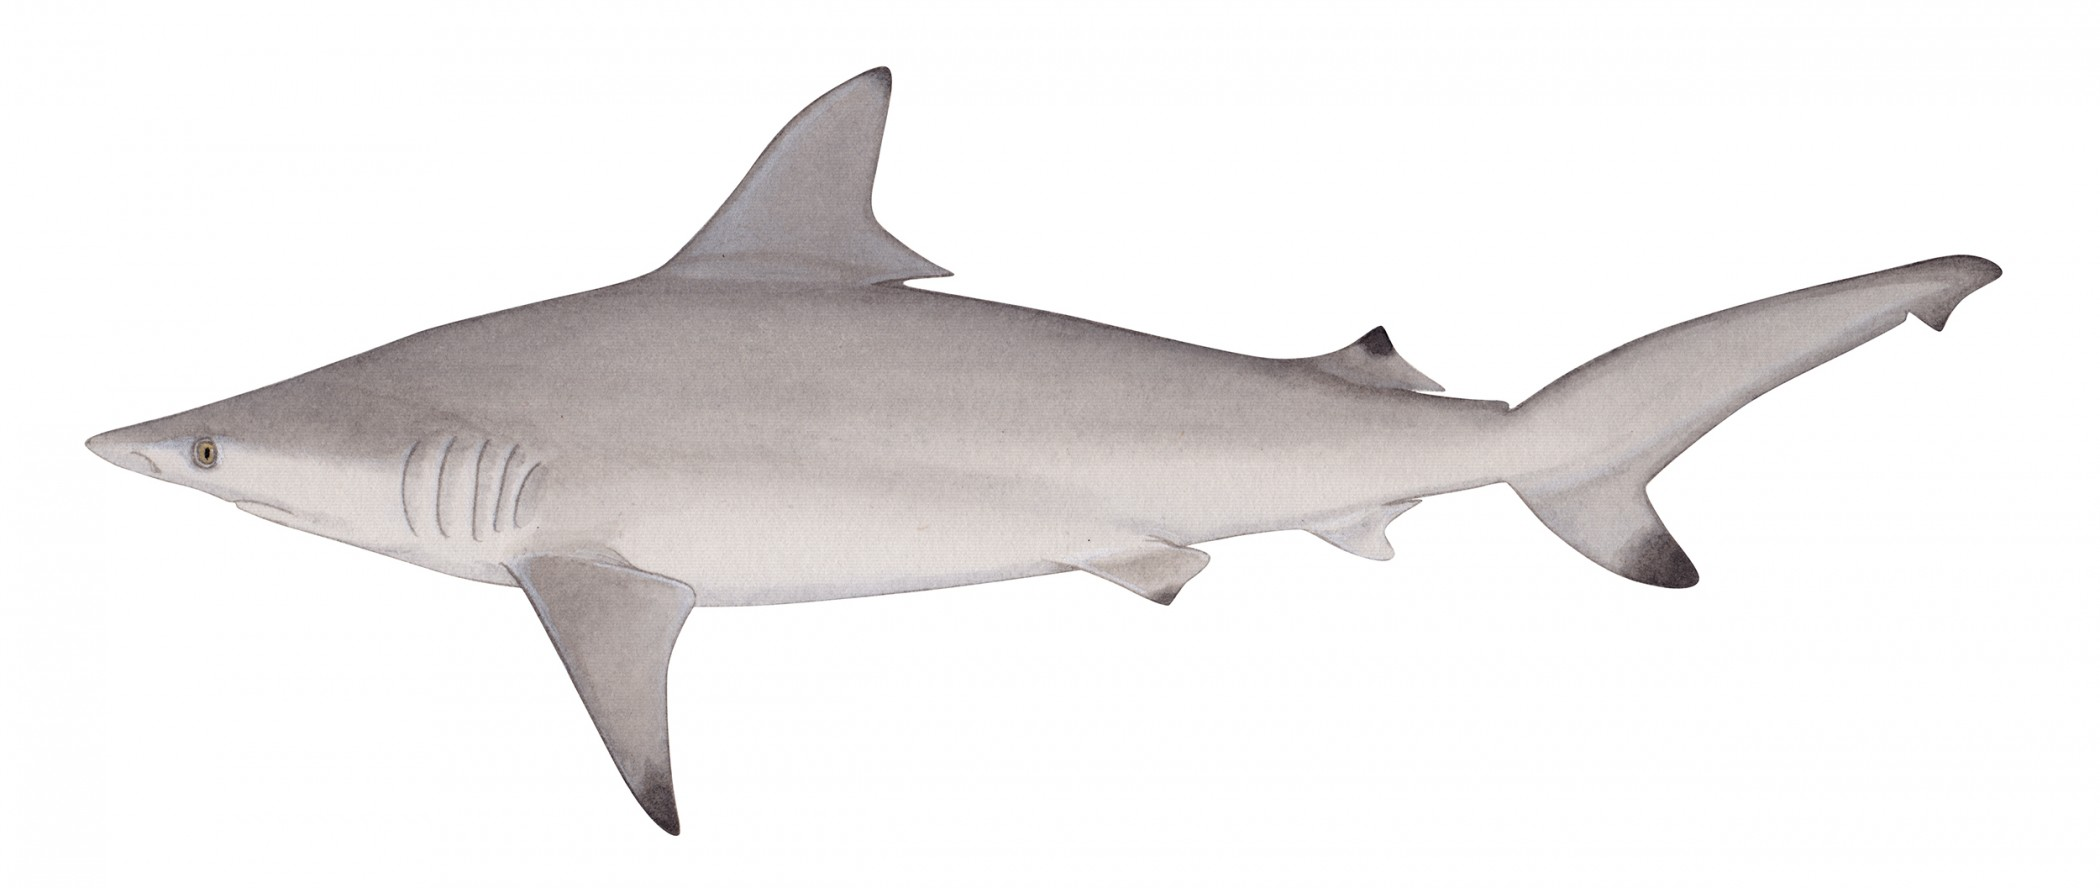 A profile view of a gray-colored blacktip shark